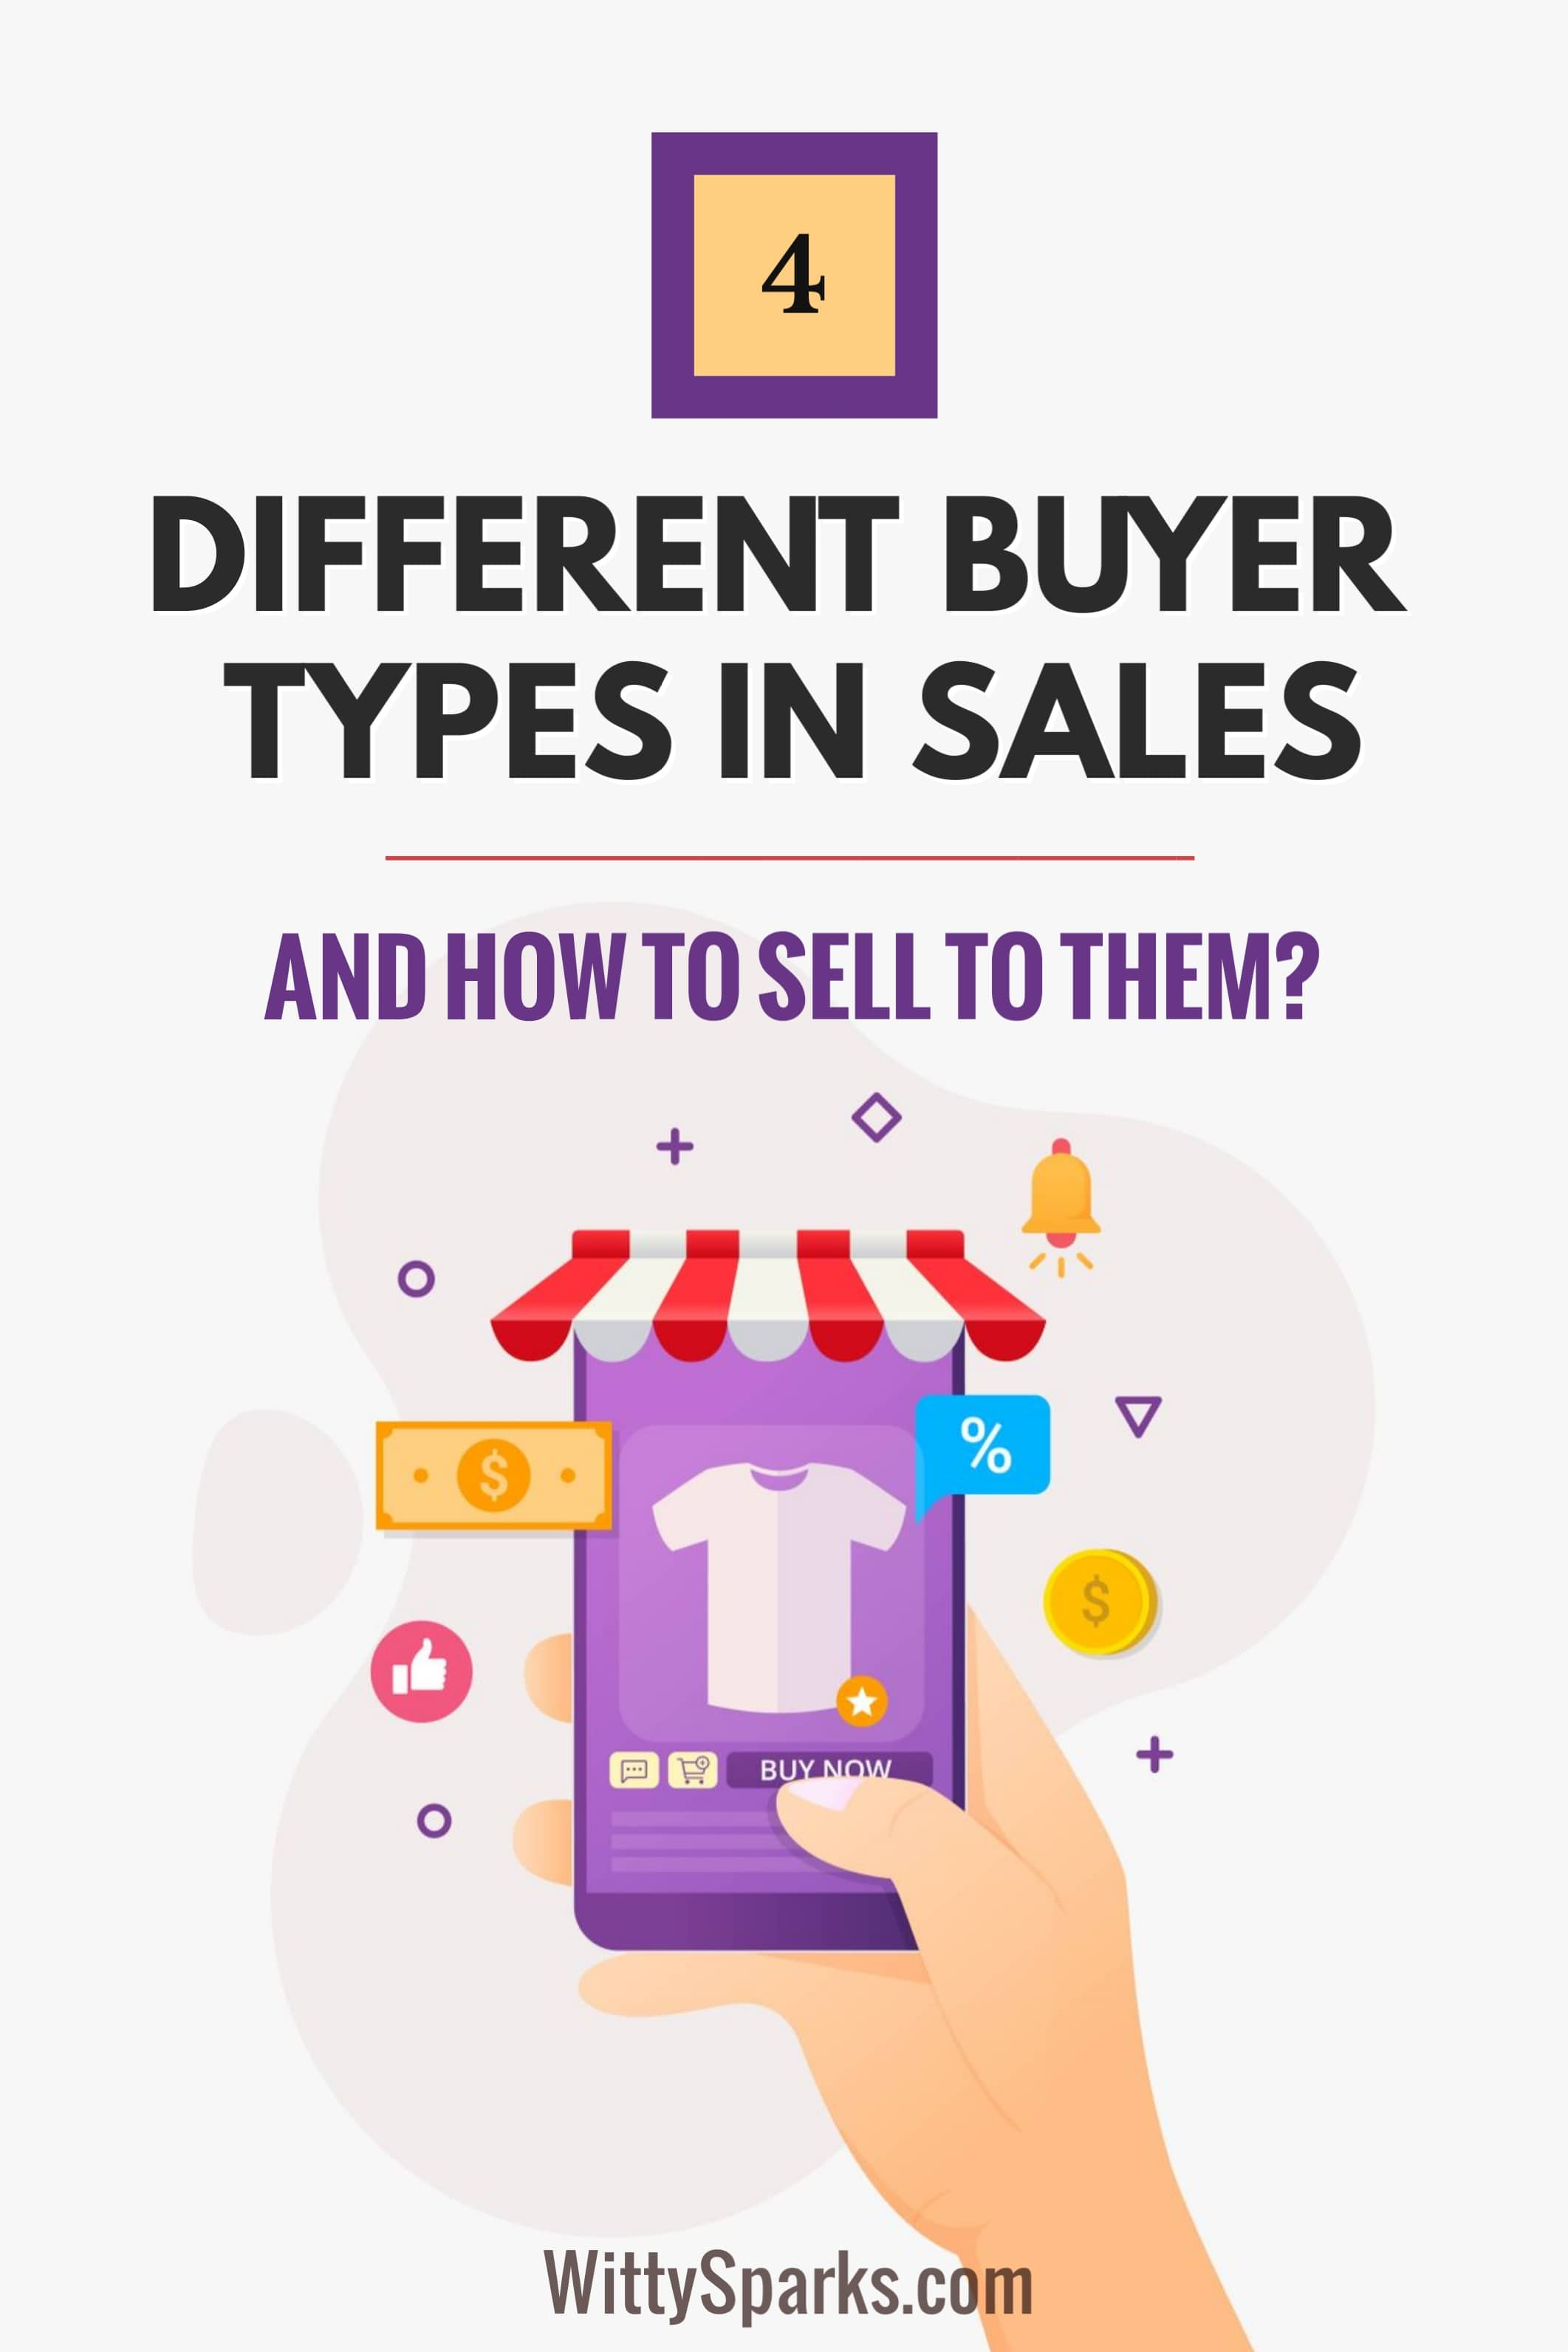 The 4 Different Buyer Types in Sales and how to Sell to them